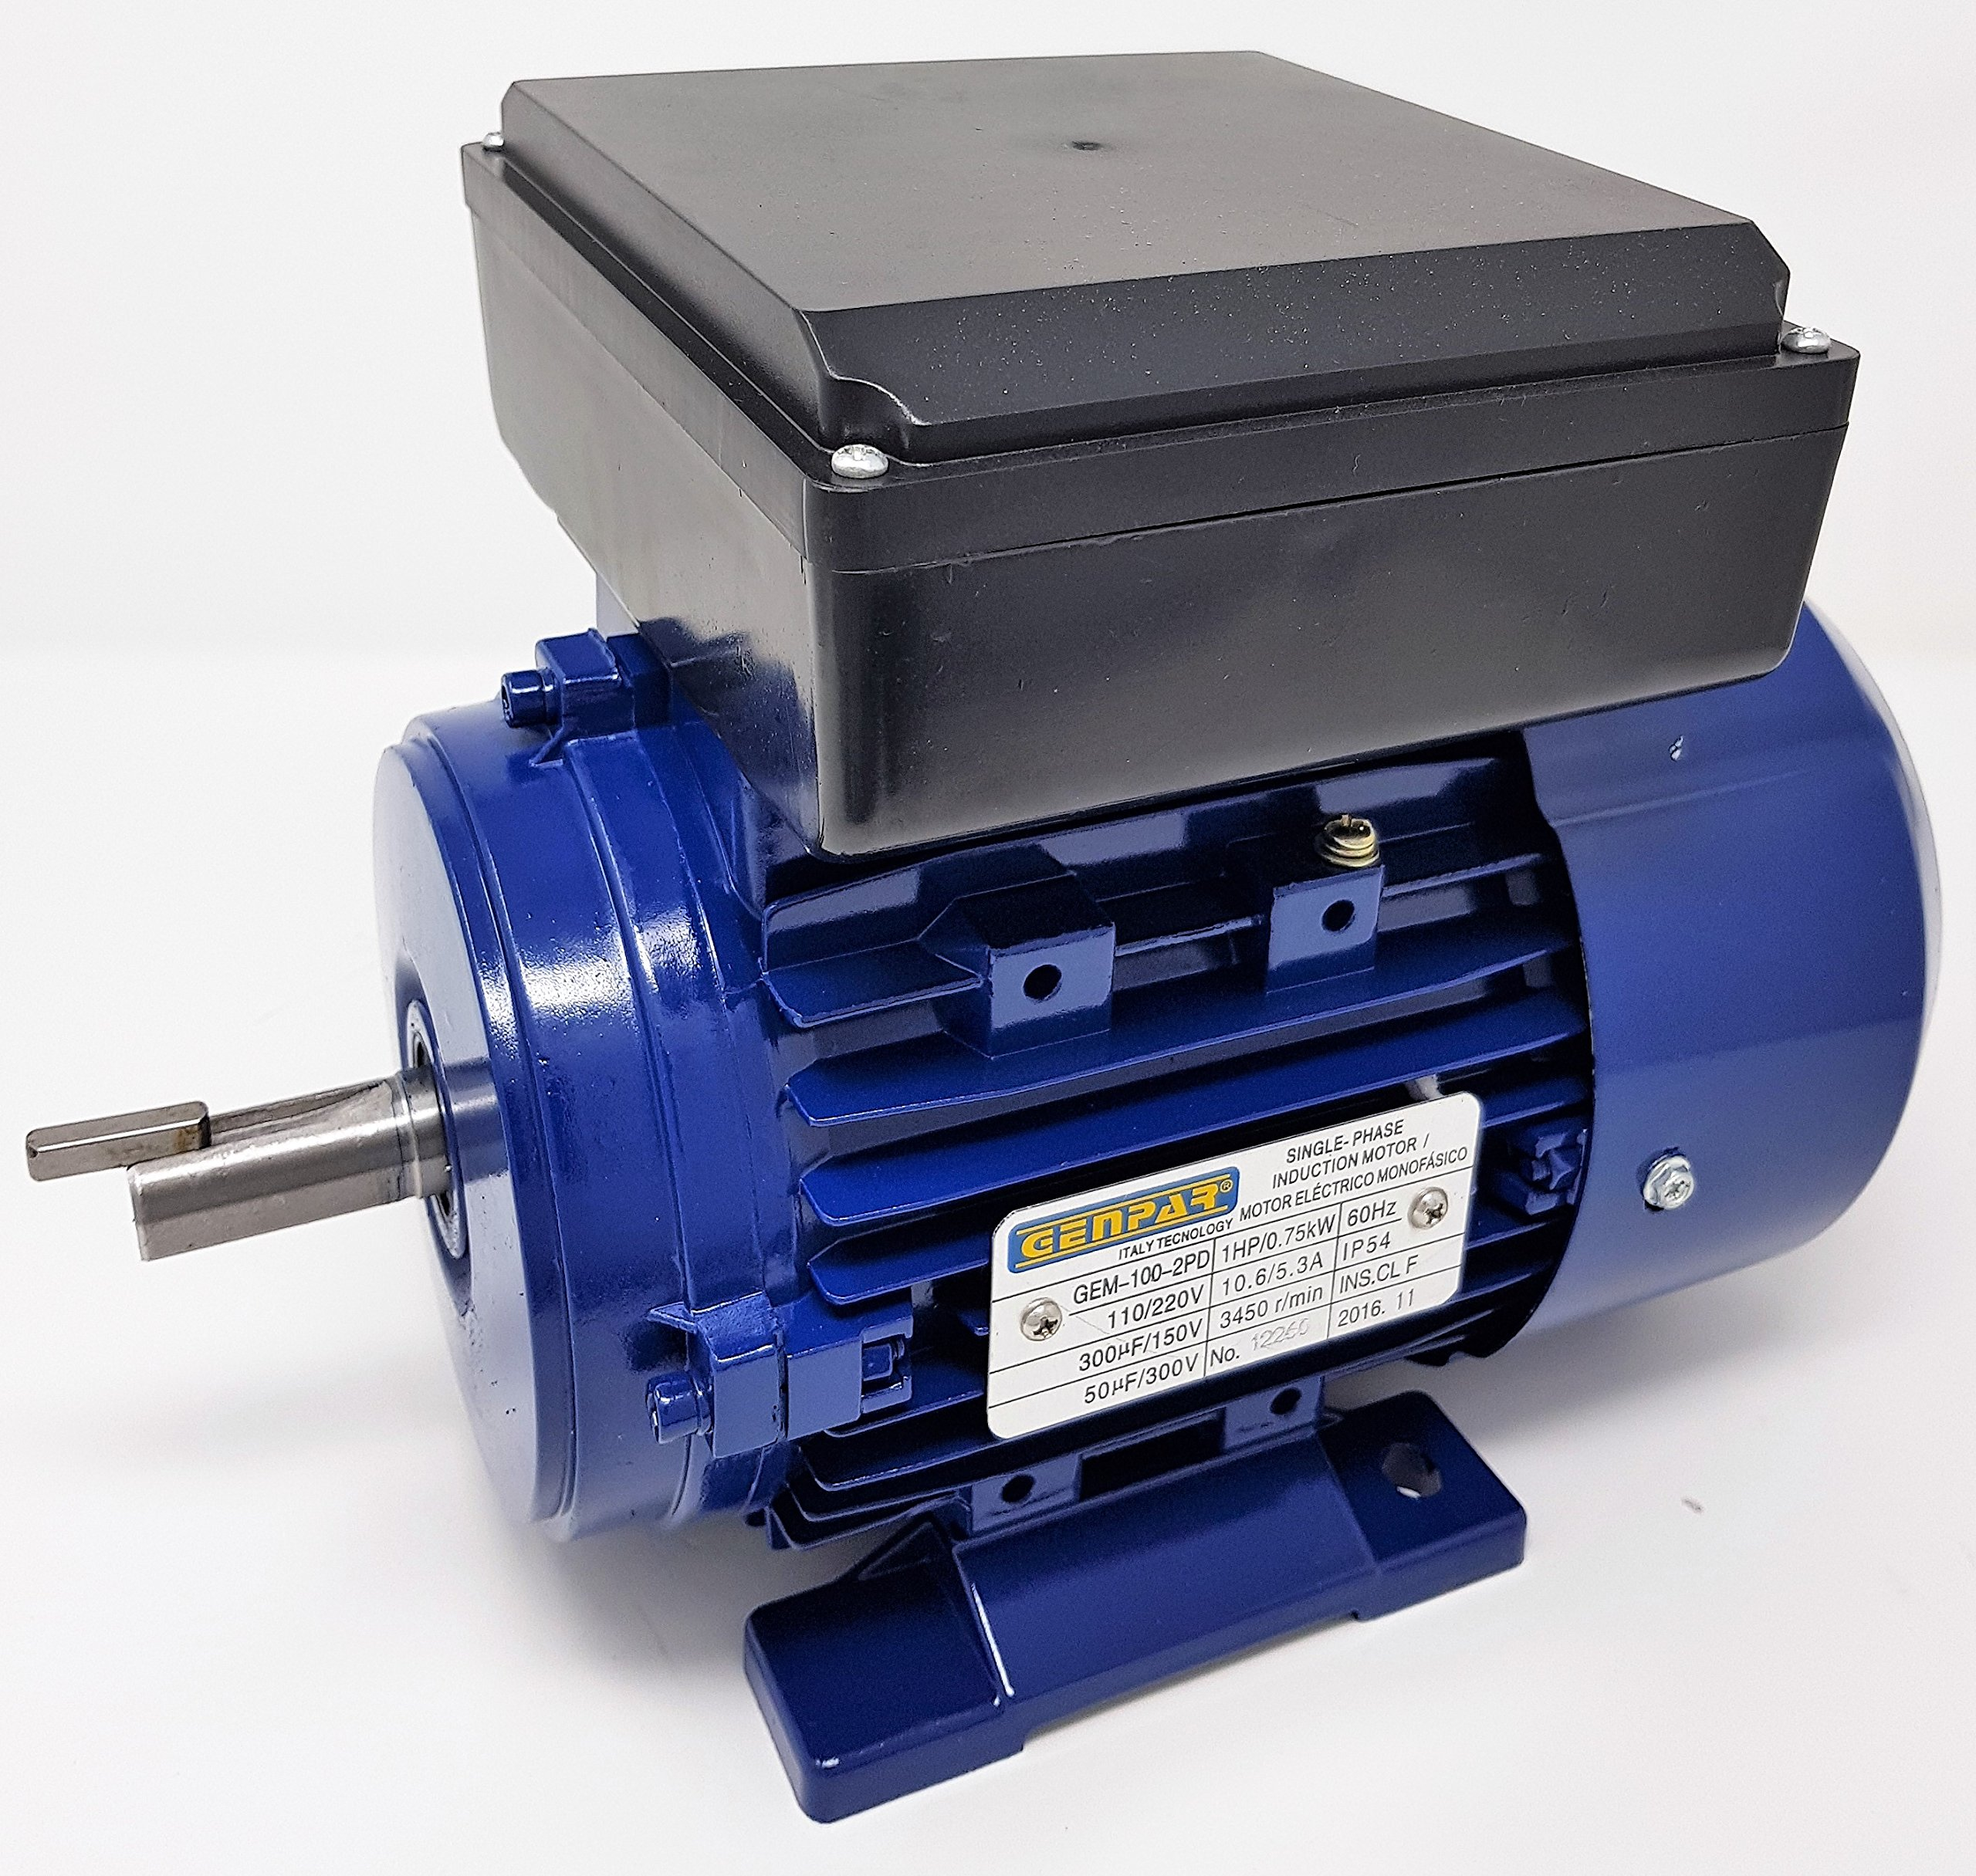 1HP 1750RPM GENPAR Electric Motor 1 Single Phase Type Industrial for HEAVY DUTY Applications BALL BEARING 4 Poles Dual Voltage 110/220V Universal Fan Compressor Pump Machines 1 HP GENERAL PURPOSE USE